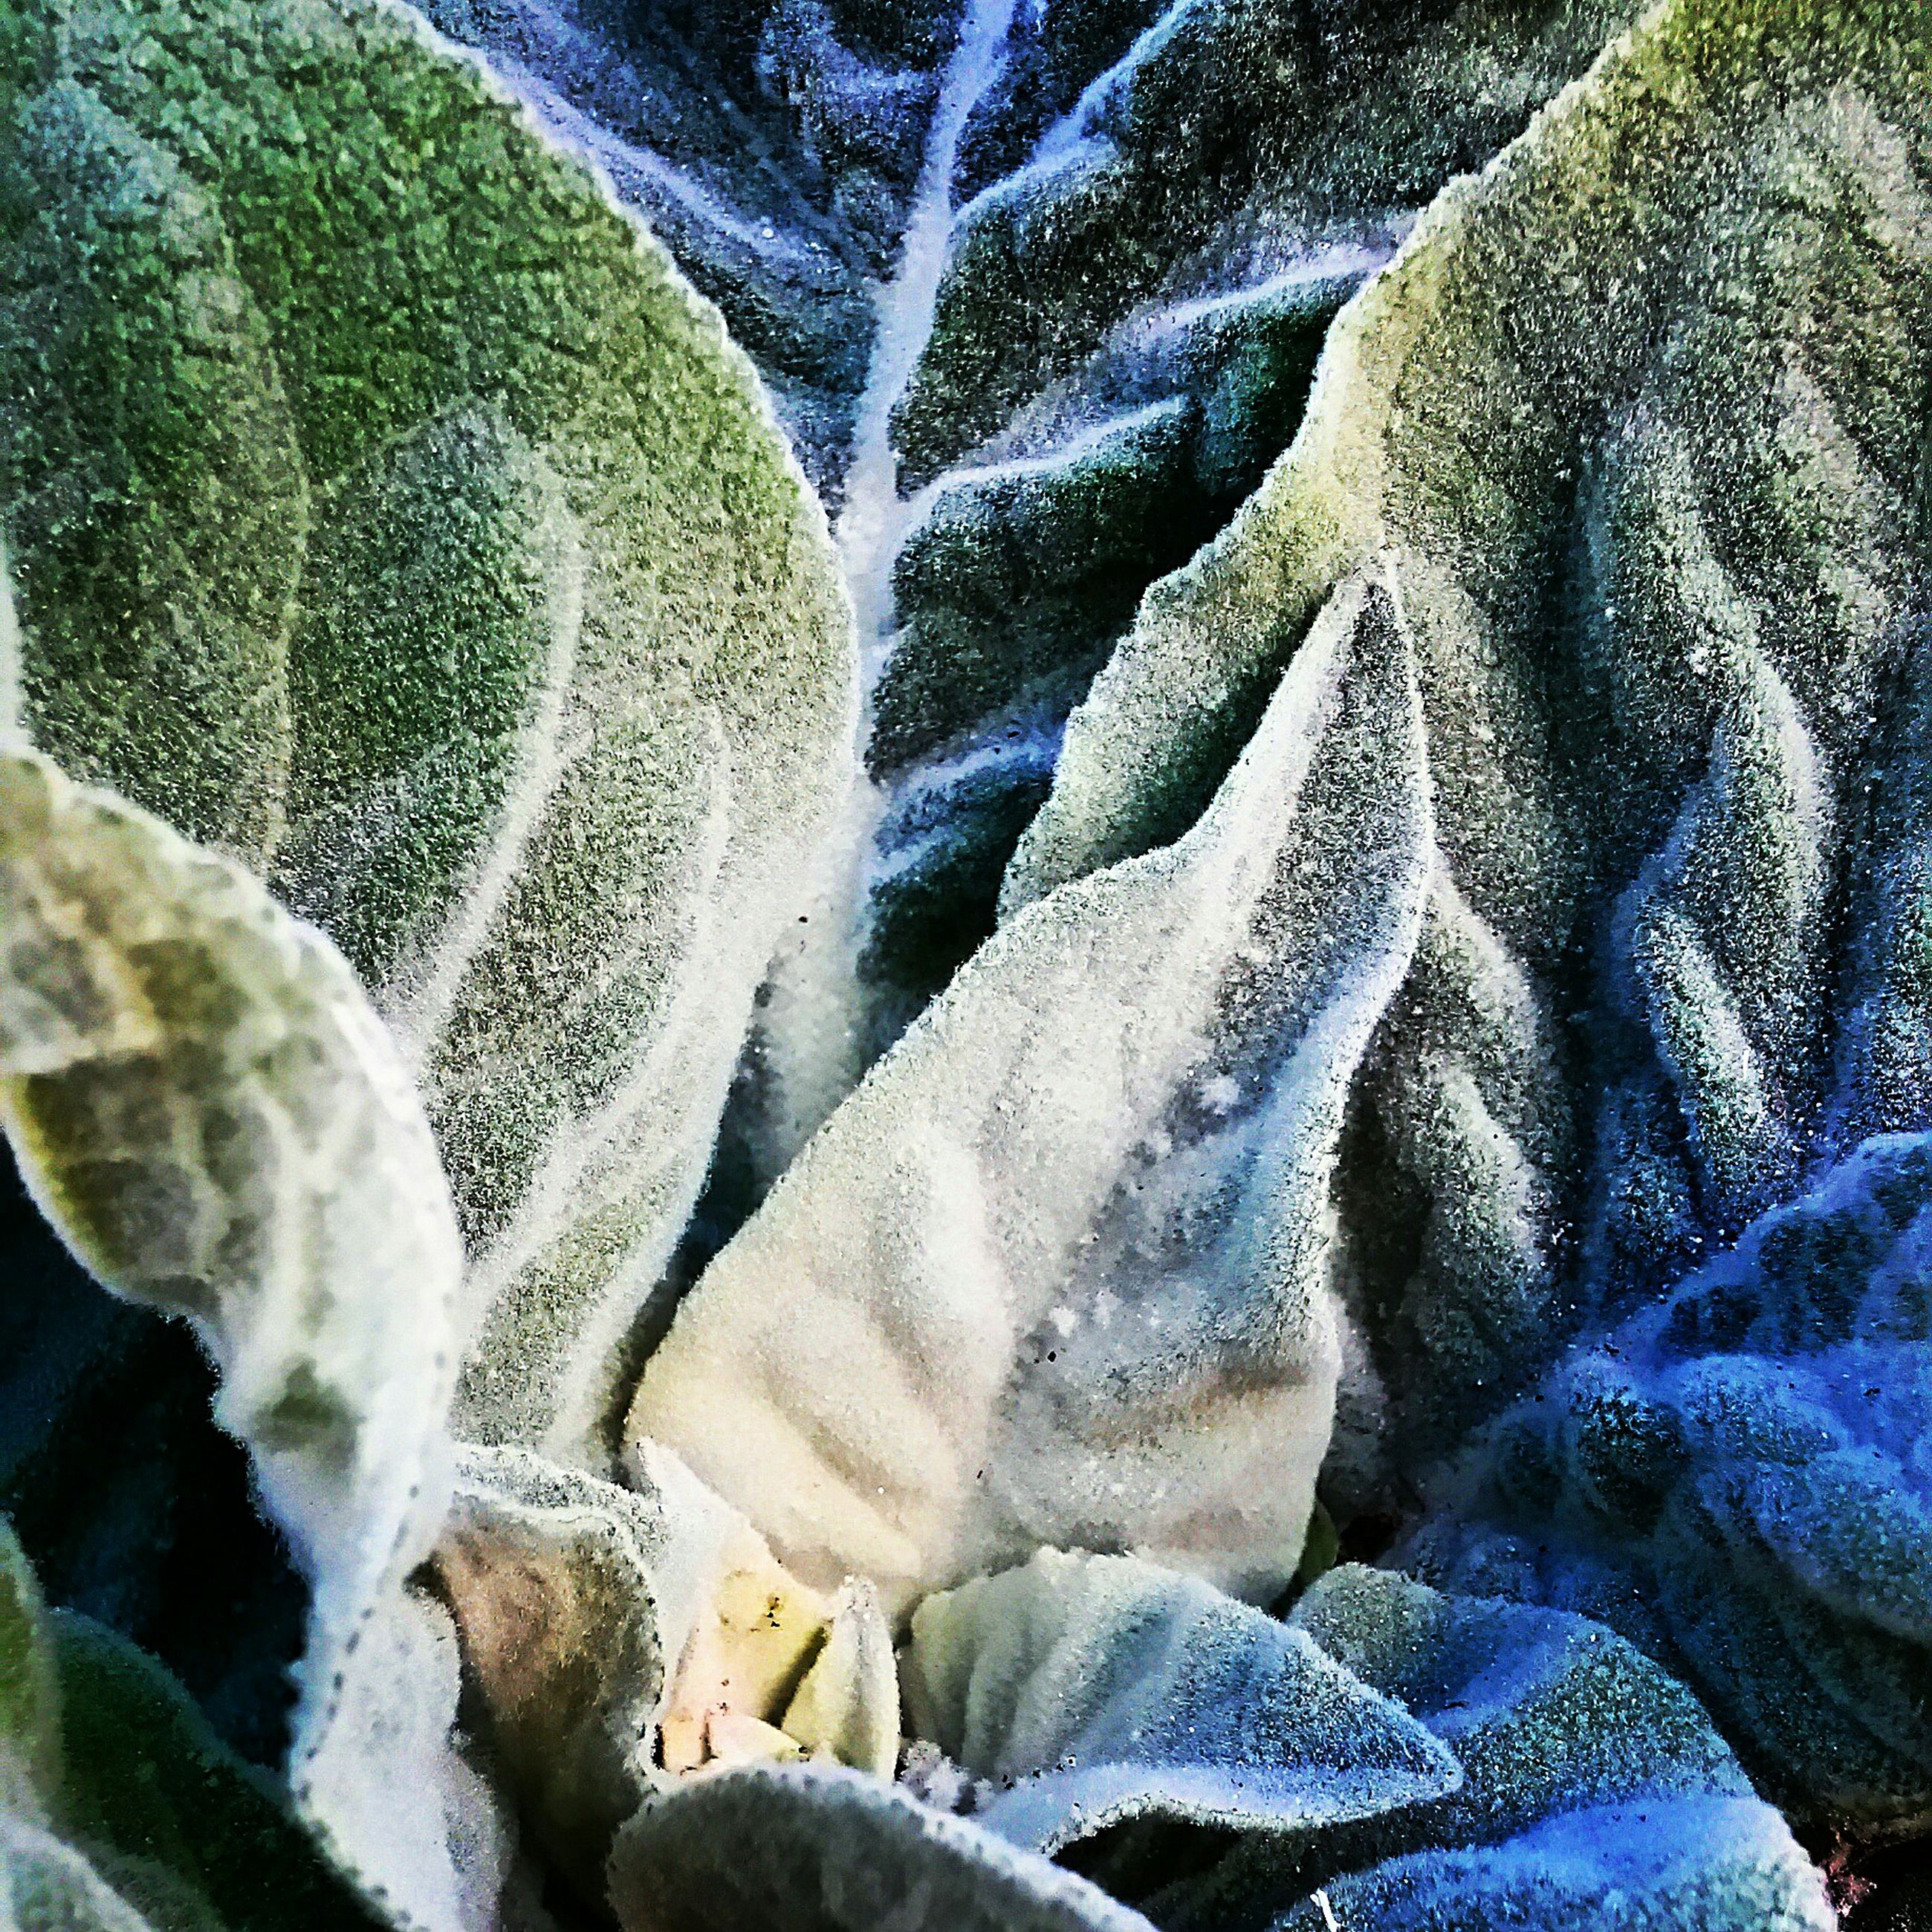 nature, beauty in nature, growth, close-up, winter, full frame, cold temperature, snow, plant, natural pattern, high angle view, backgrounds, tranquility, outdoors, day, freshness, no people, season, white color, leaf